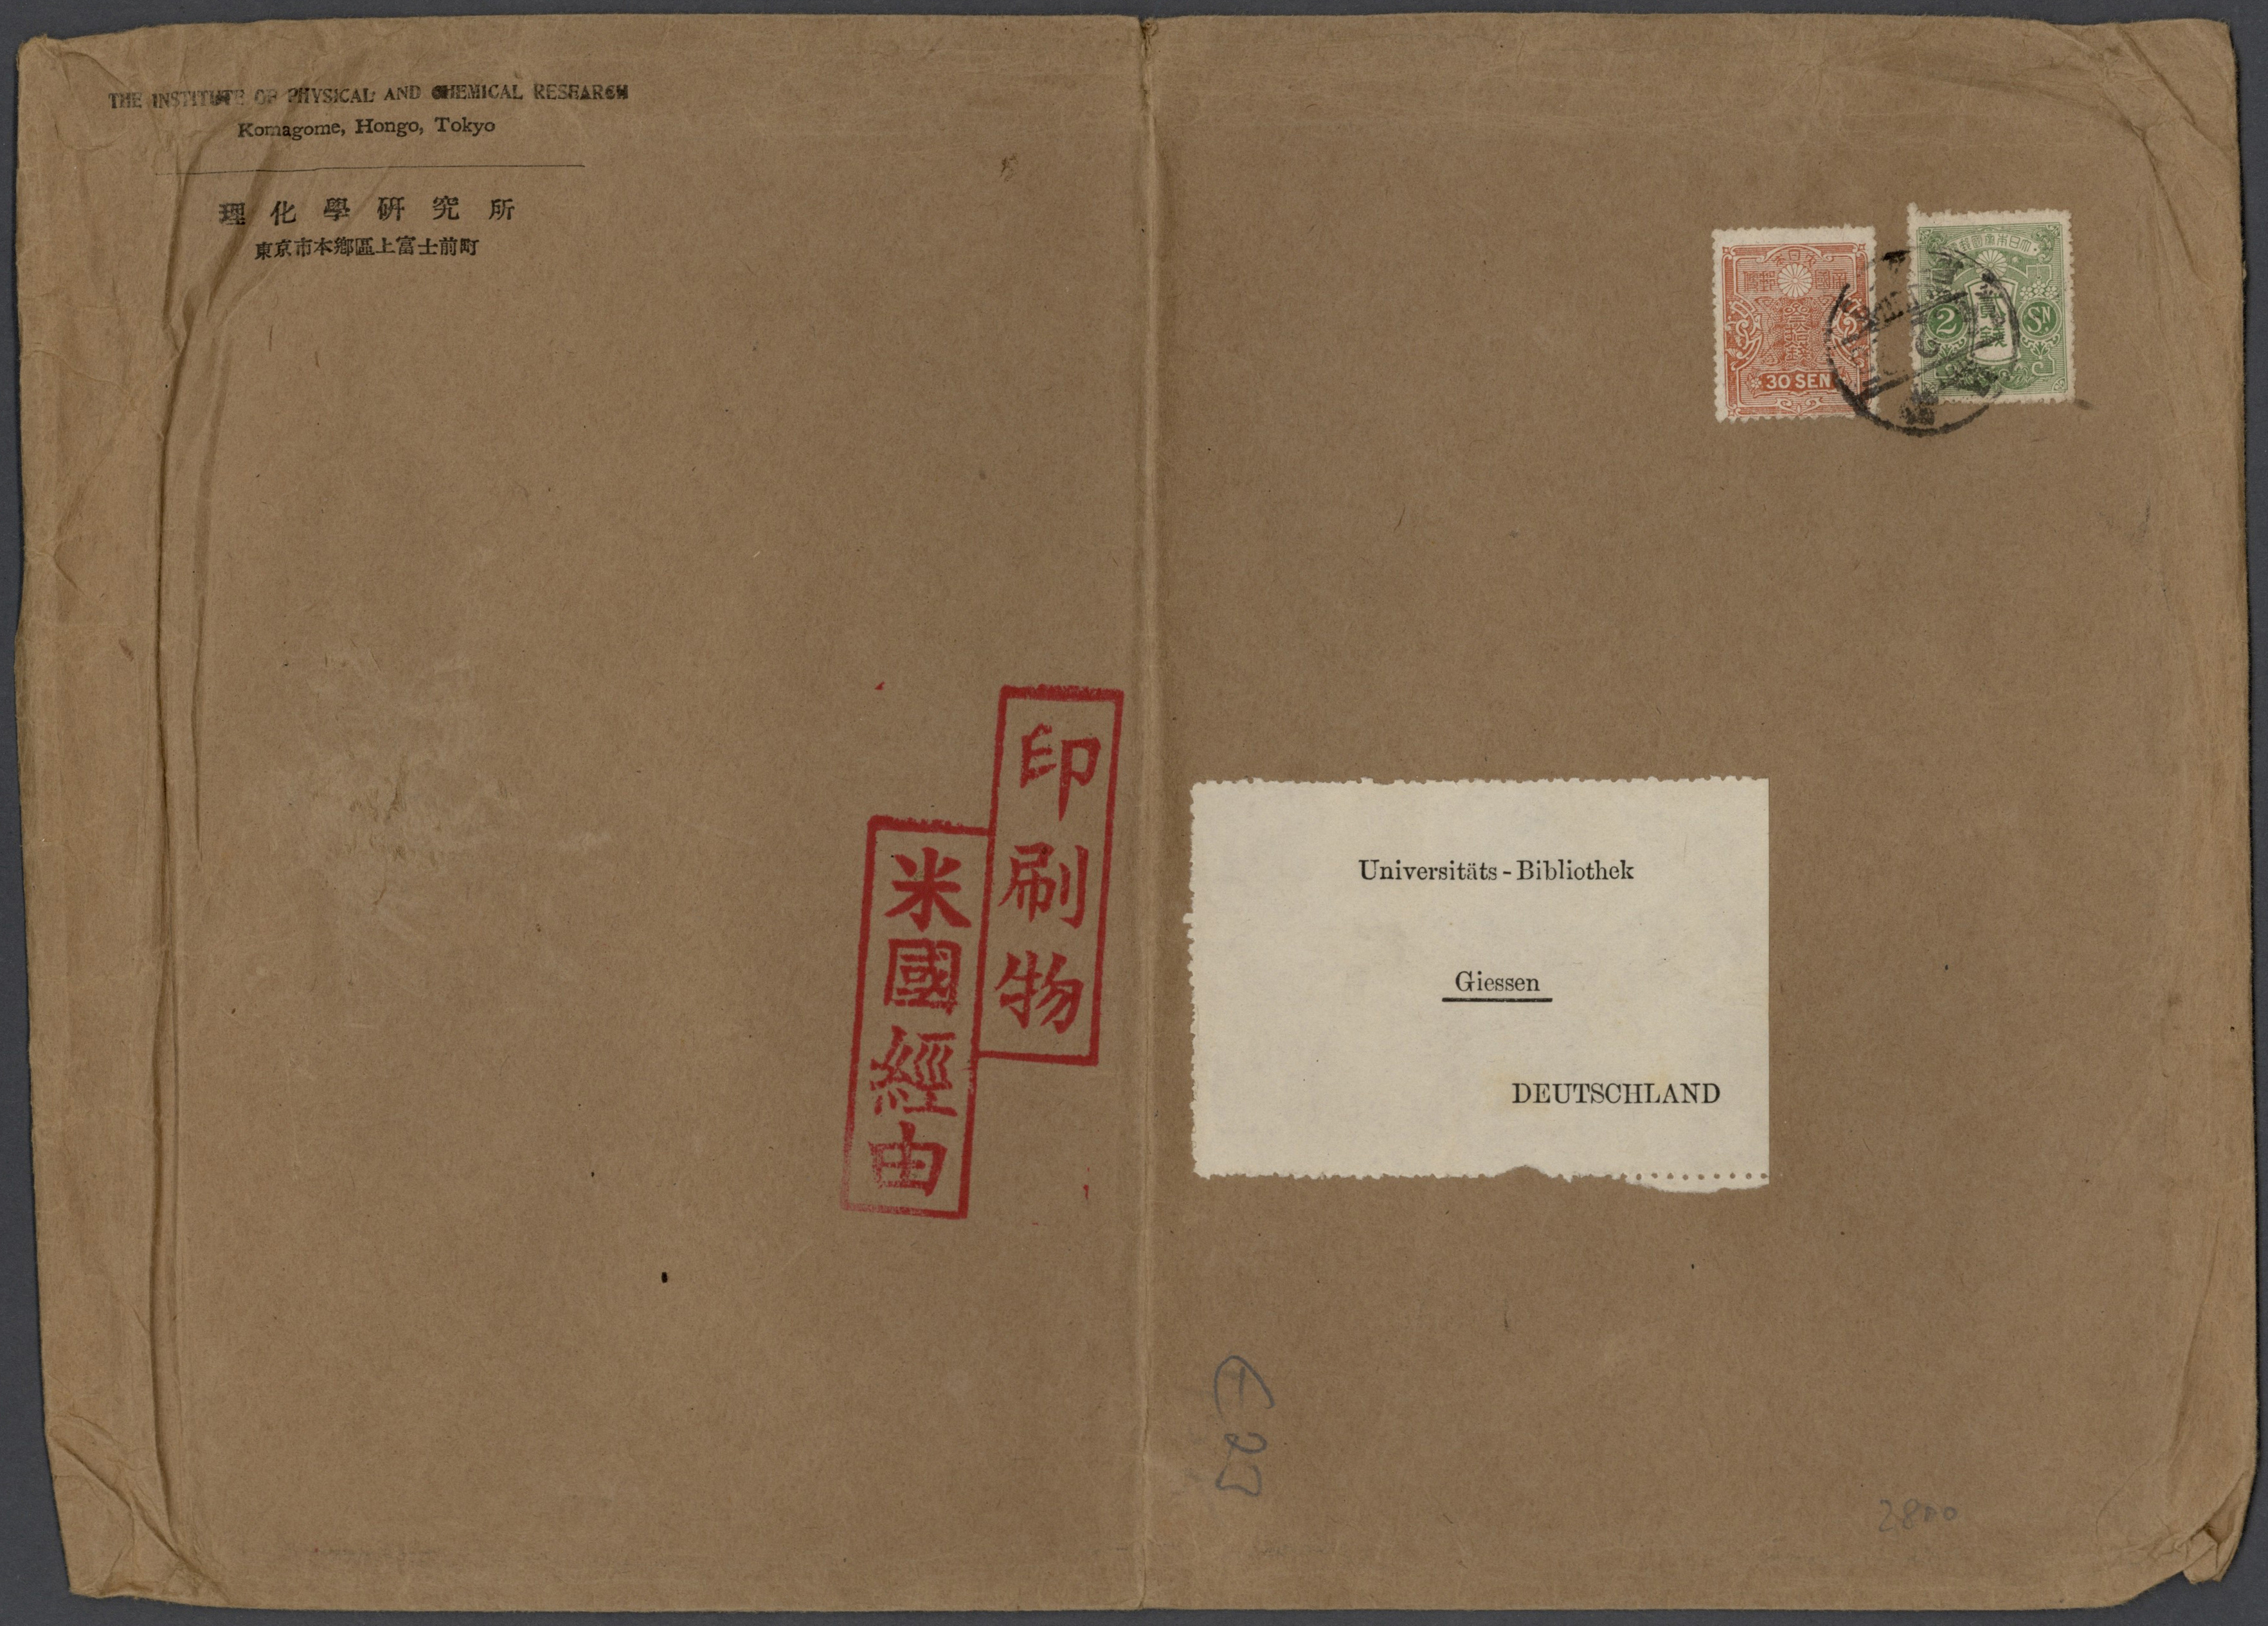 Lot 34535 - Japan  -  Auktionshaus Christoph Gärtner GmbH & Co. KG Collections Germany,  Collections Supplement, Surprise boxes #39 Day 7